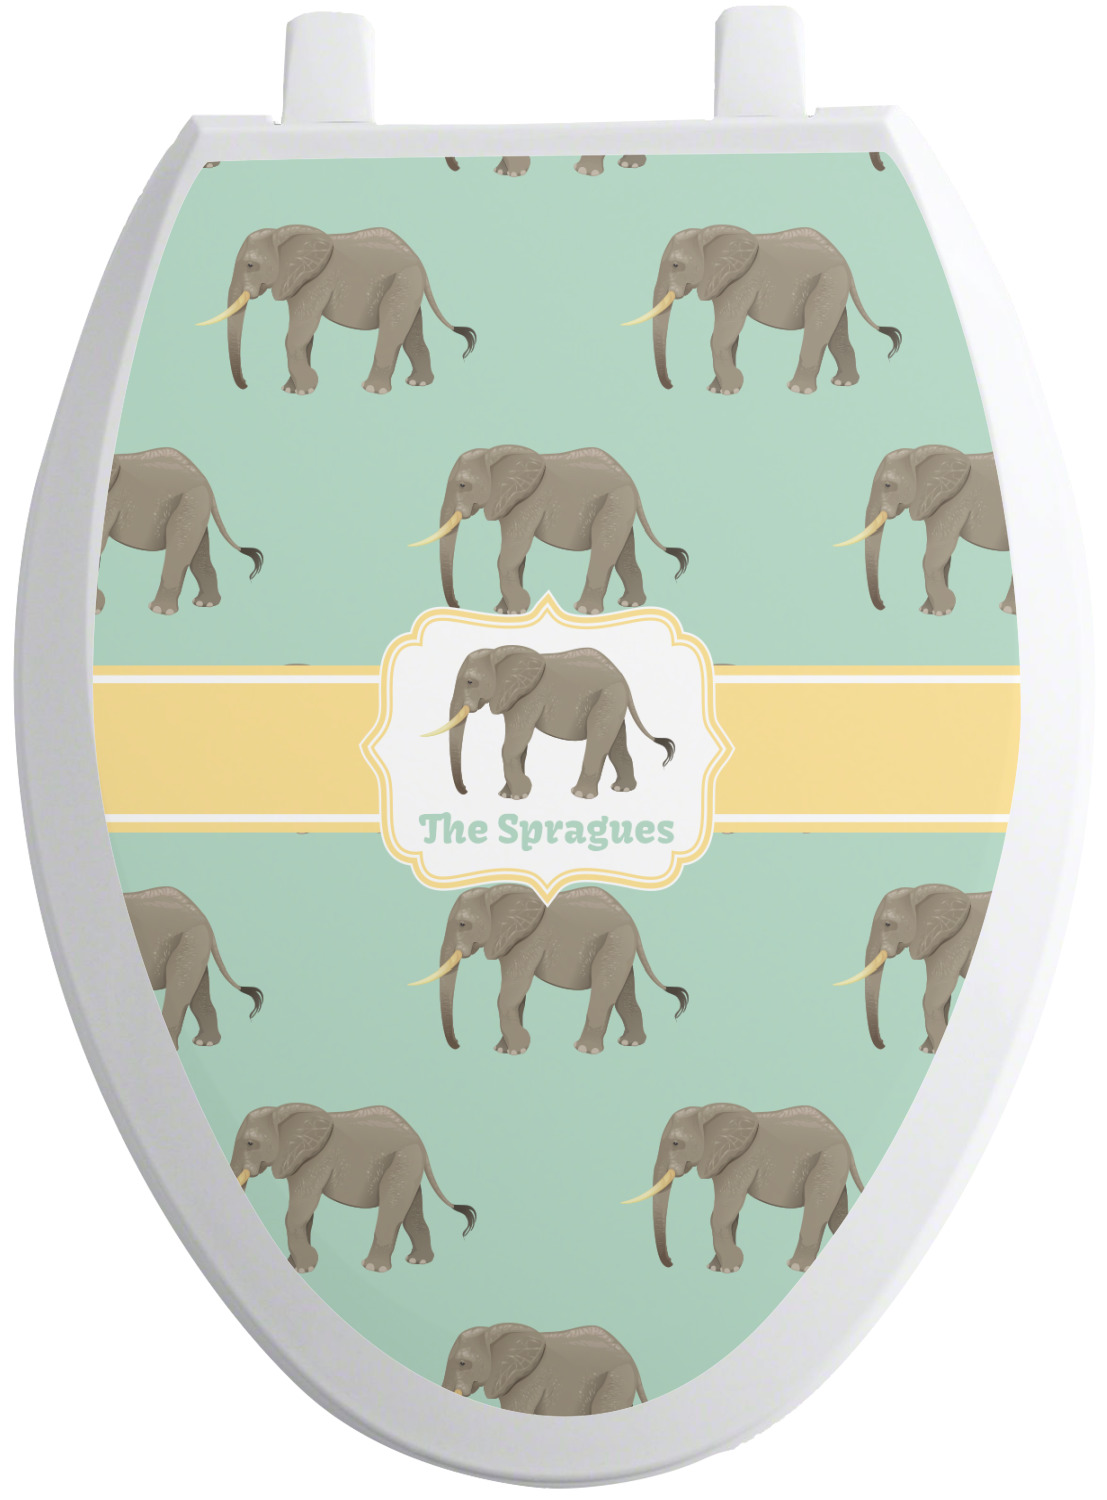 Elephant Toilet Seat Decal Elongated Personalized